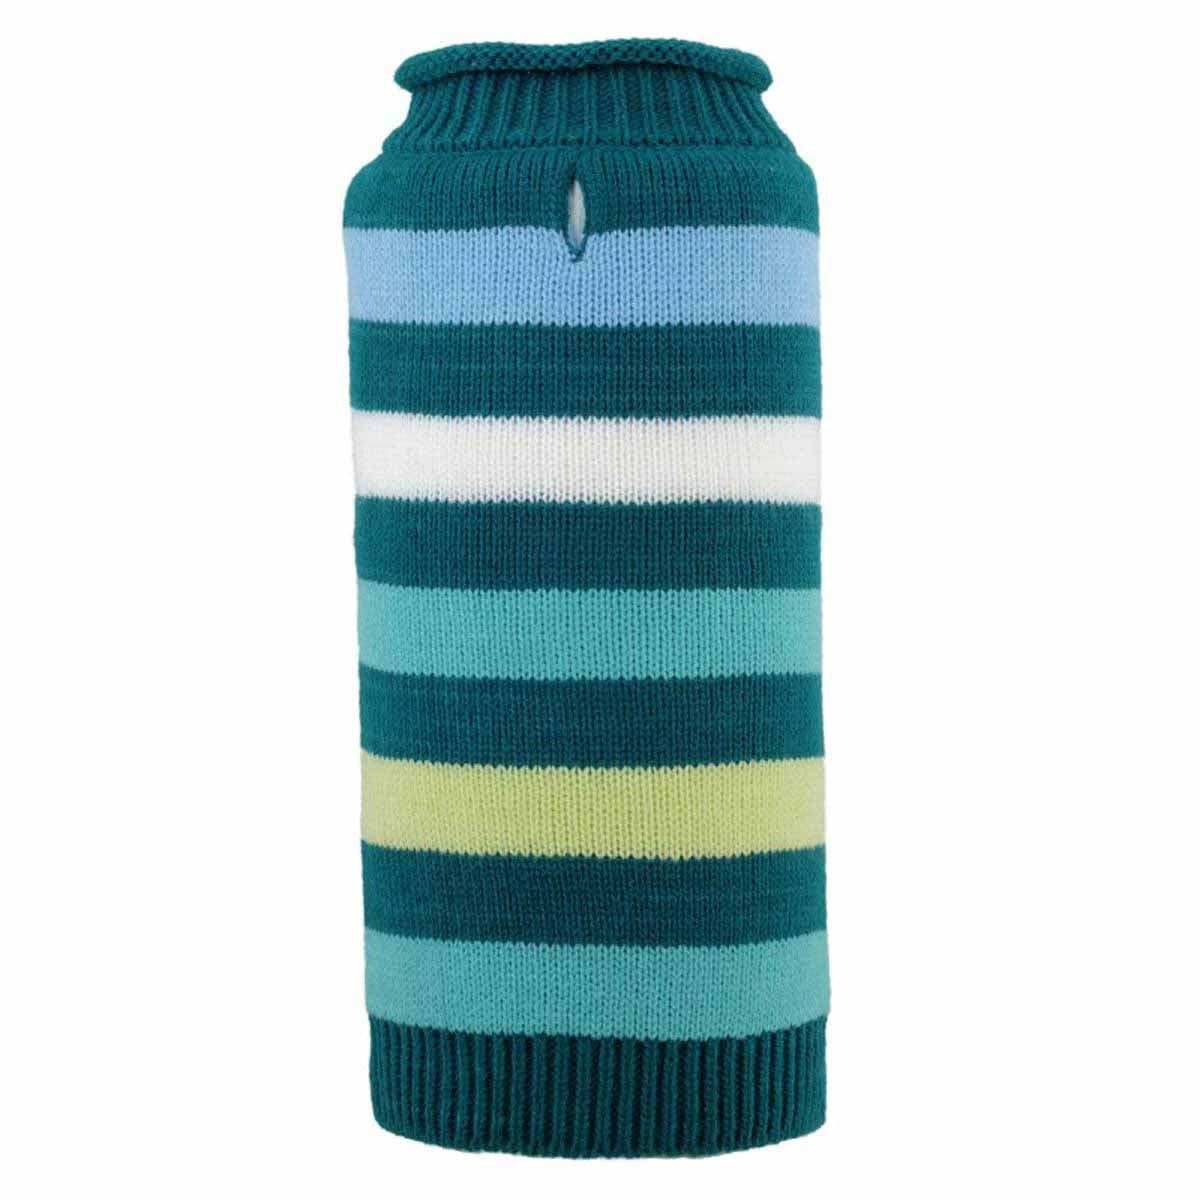 Worthy Dog Dapper Striped Dog Sweater - Teal